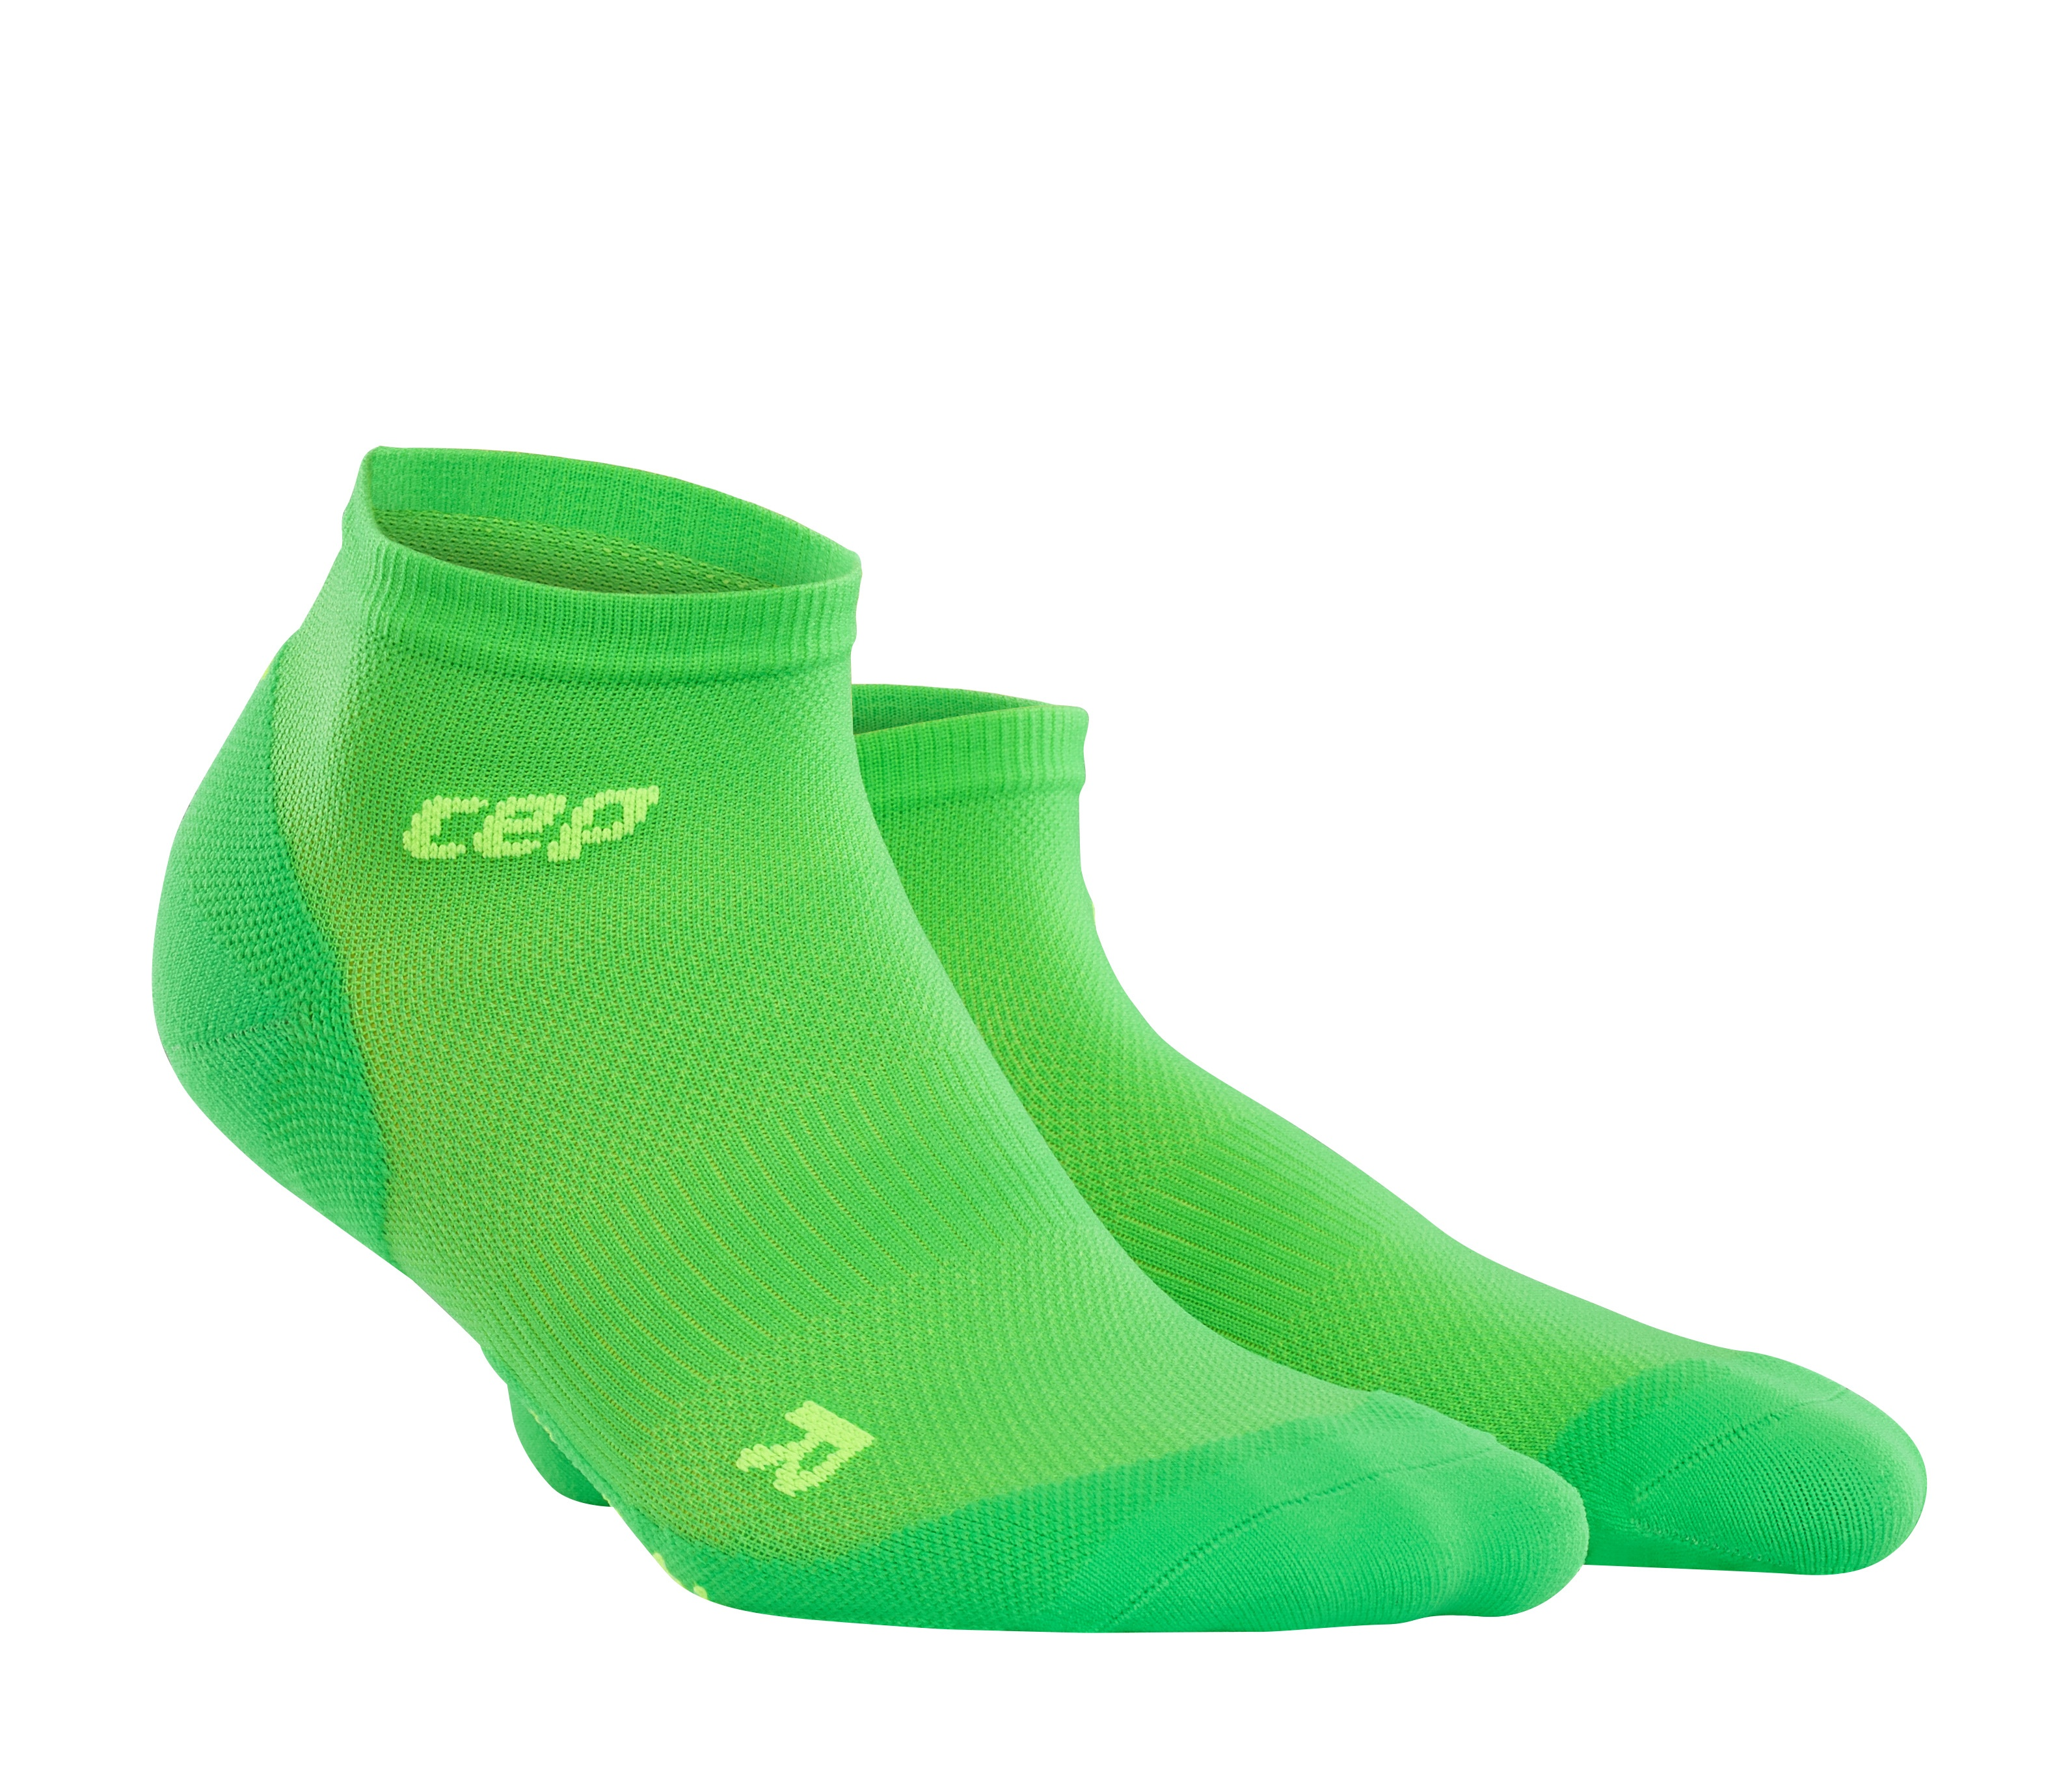 ultralight_low_cut_socks_viper_green_m_WP5AGD_pair.jpg